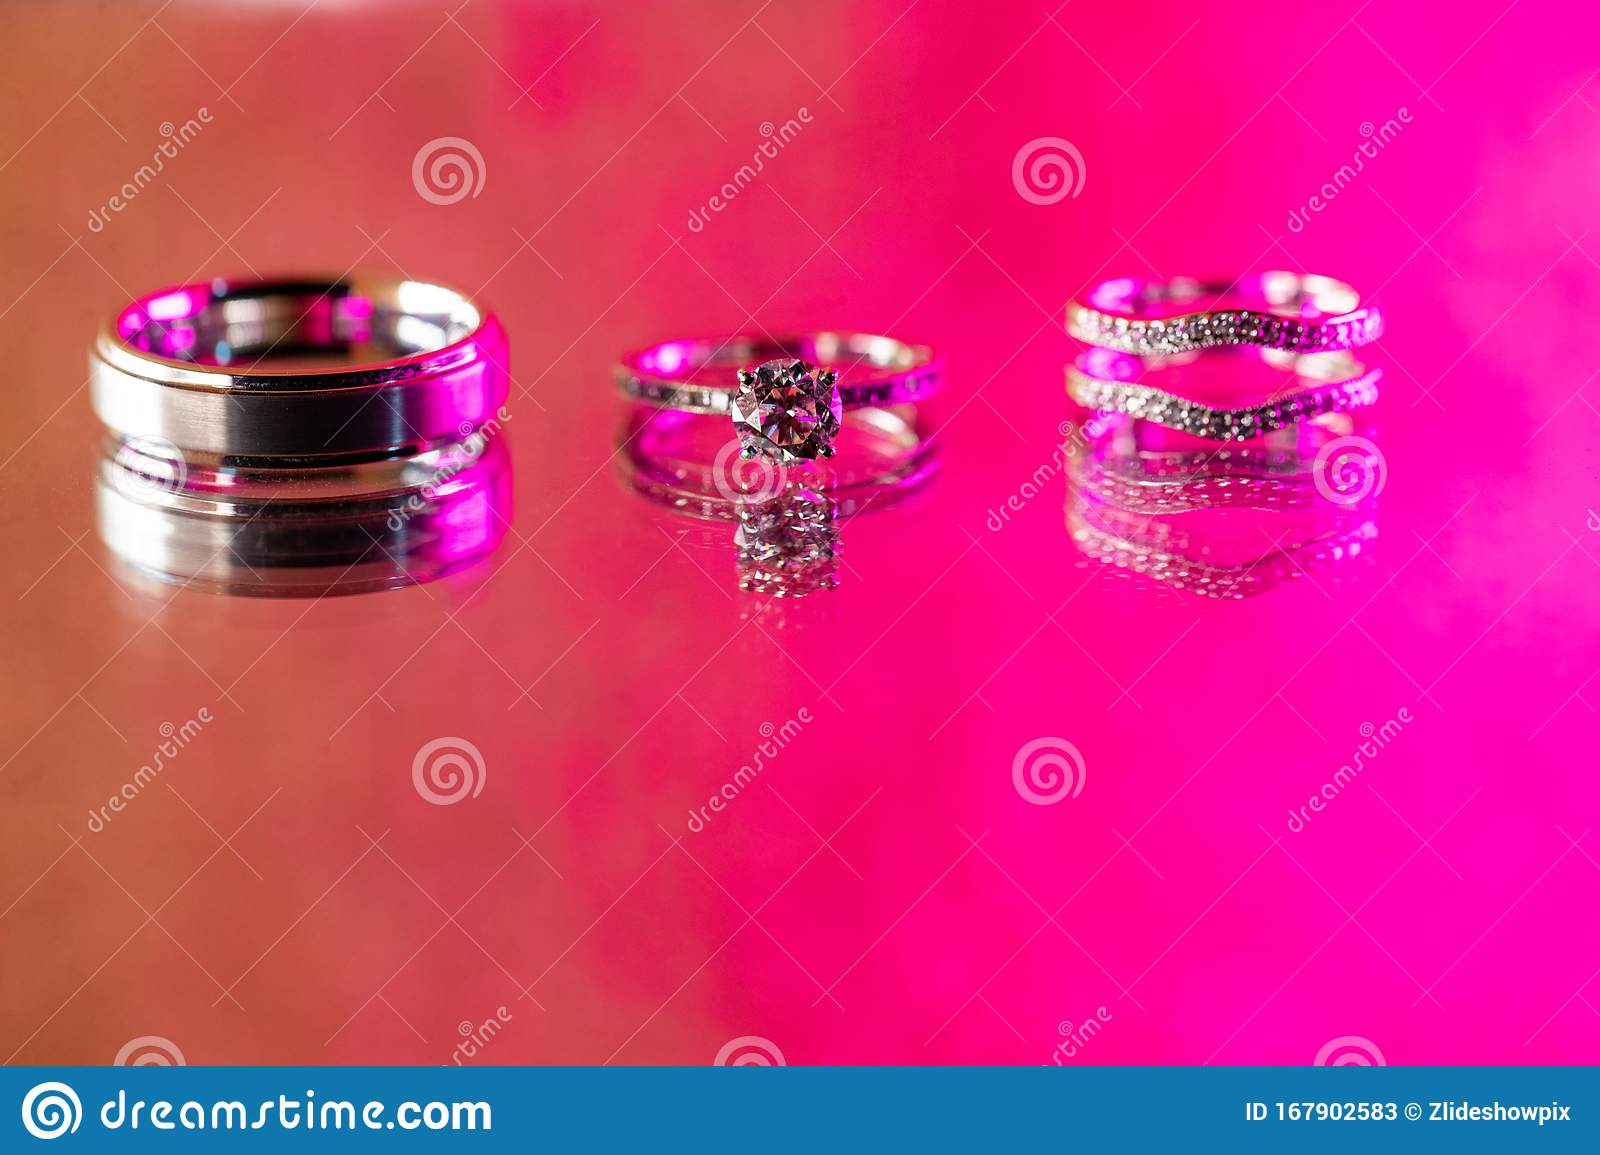 It is just a graphic of Wedding Ring Macro Ring Shots. Stock Image - Image of diamond